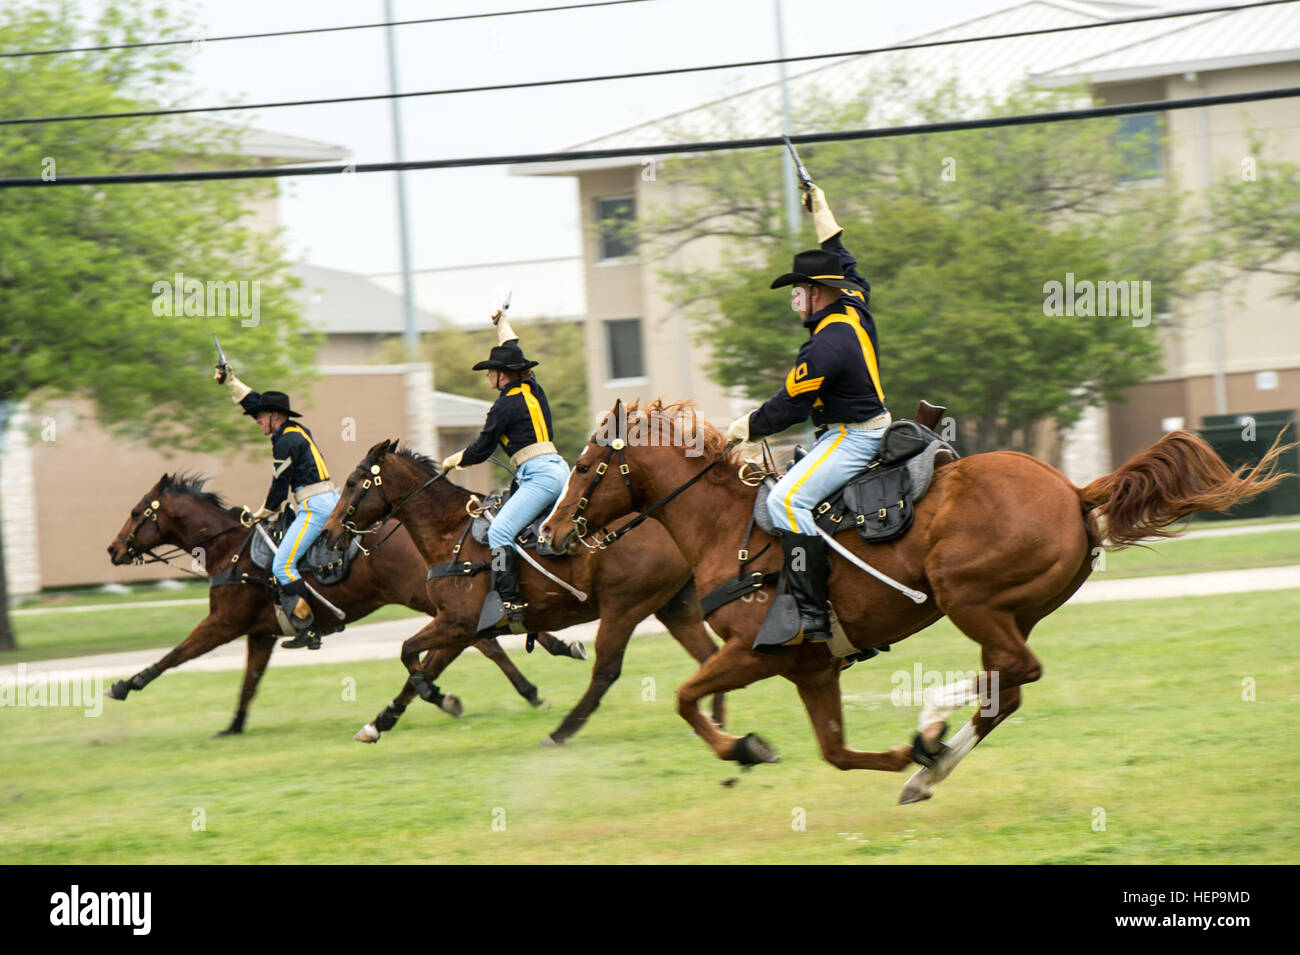 u s army 1st cavalry division horse cavalry detachment conducts a